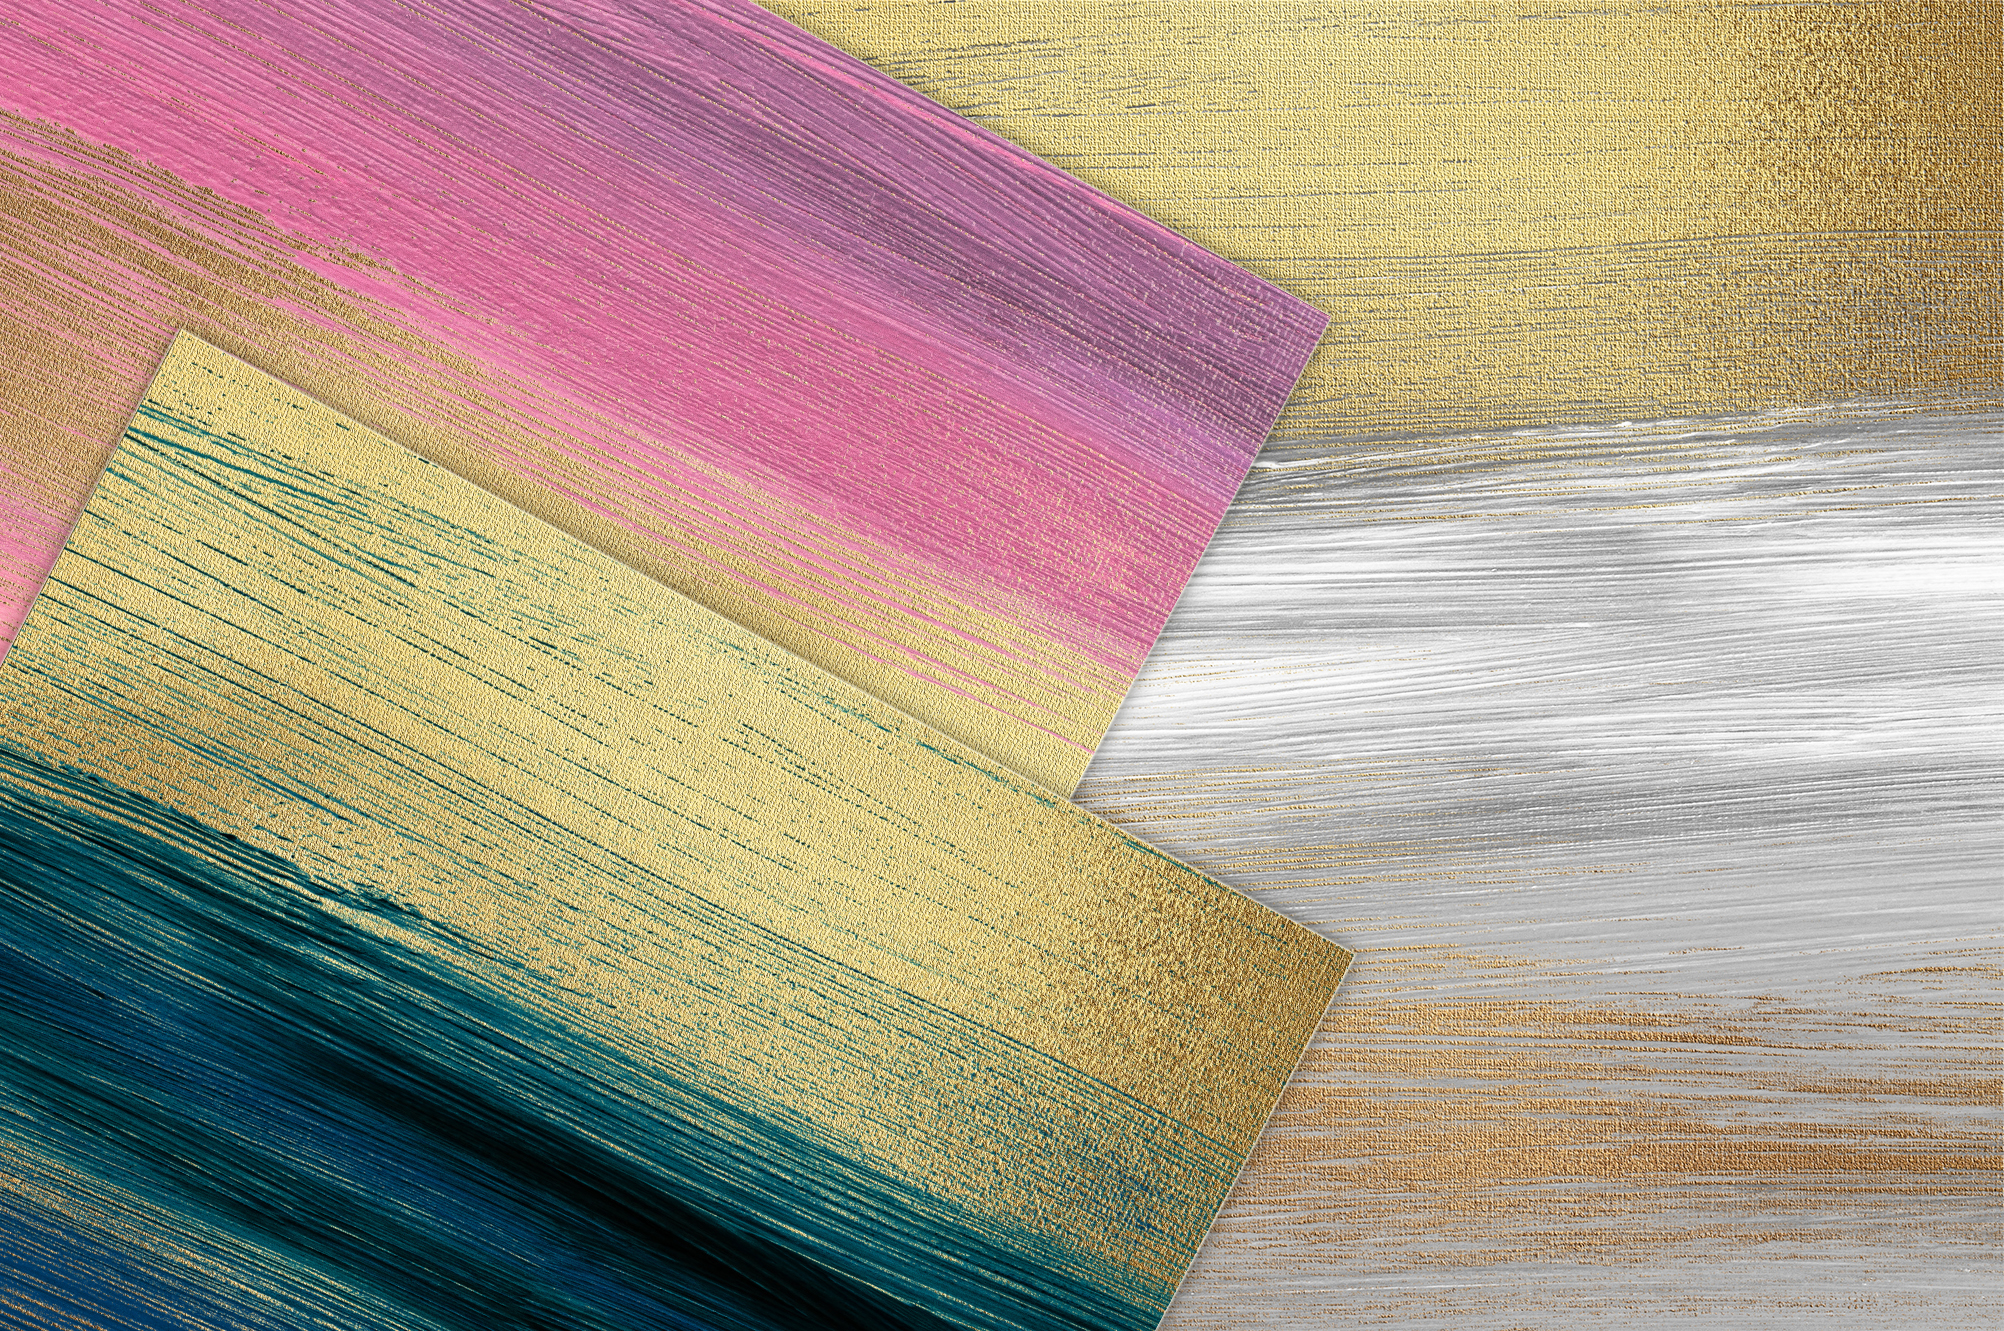 Gold Oil Paint Backgrounds example image 12